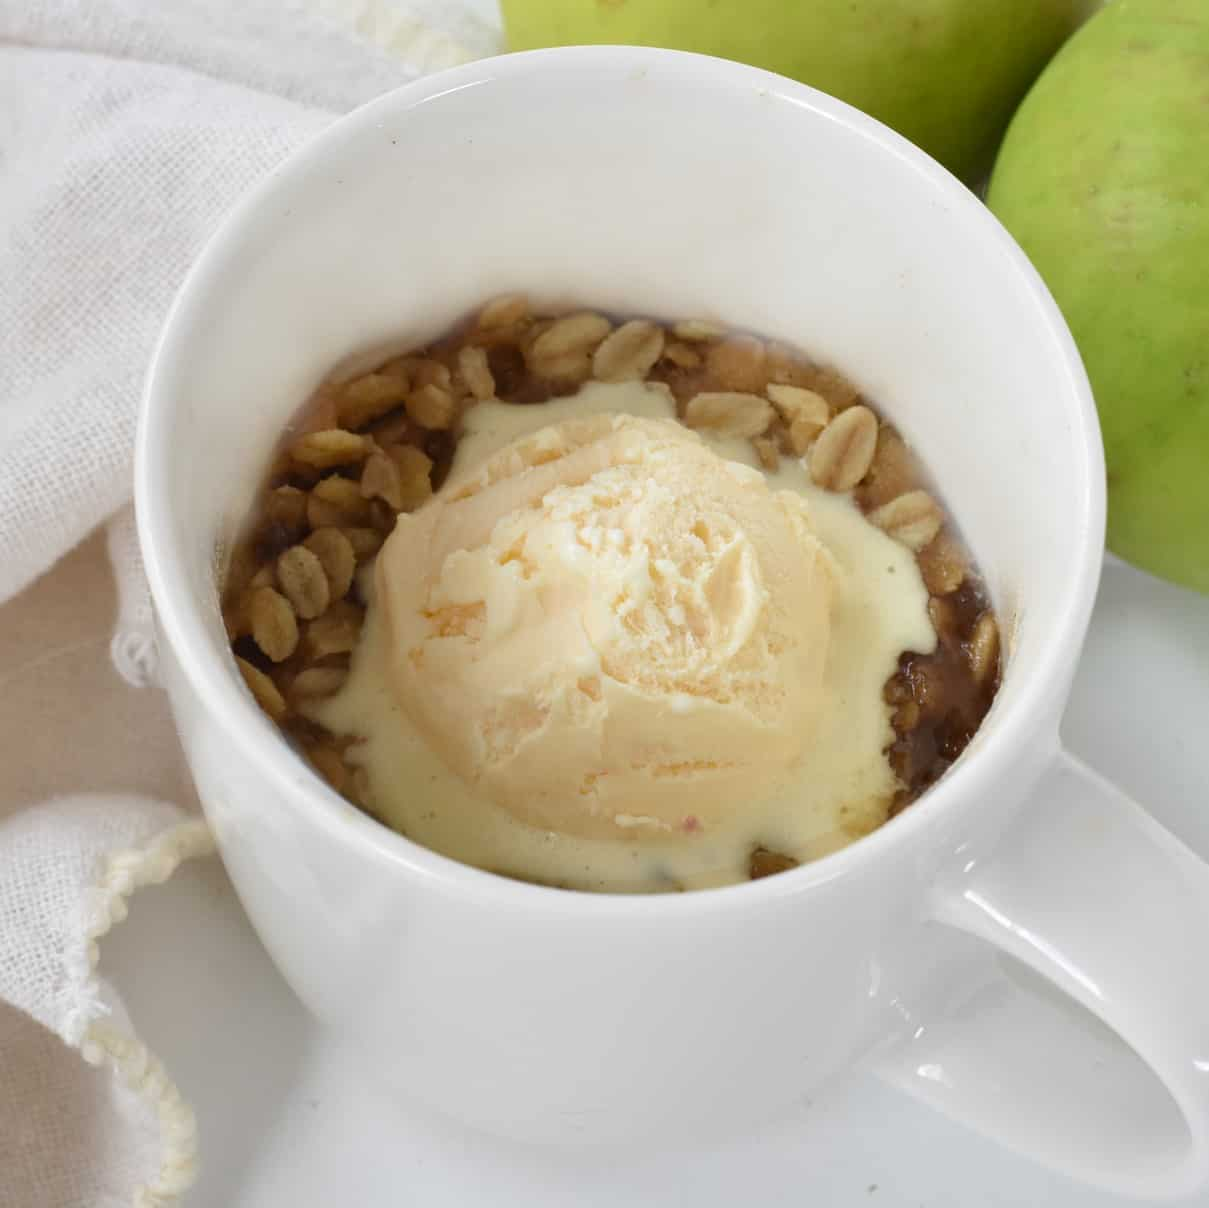 Apple crisp in mug with ice cream.